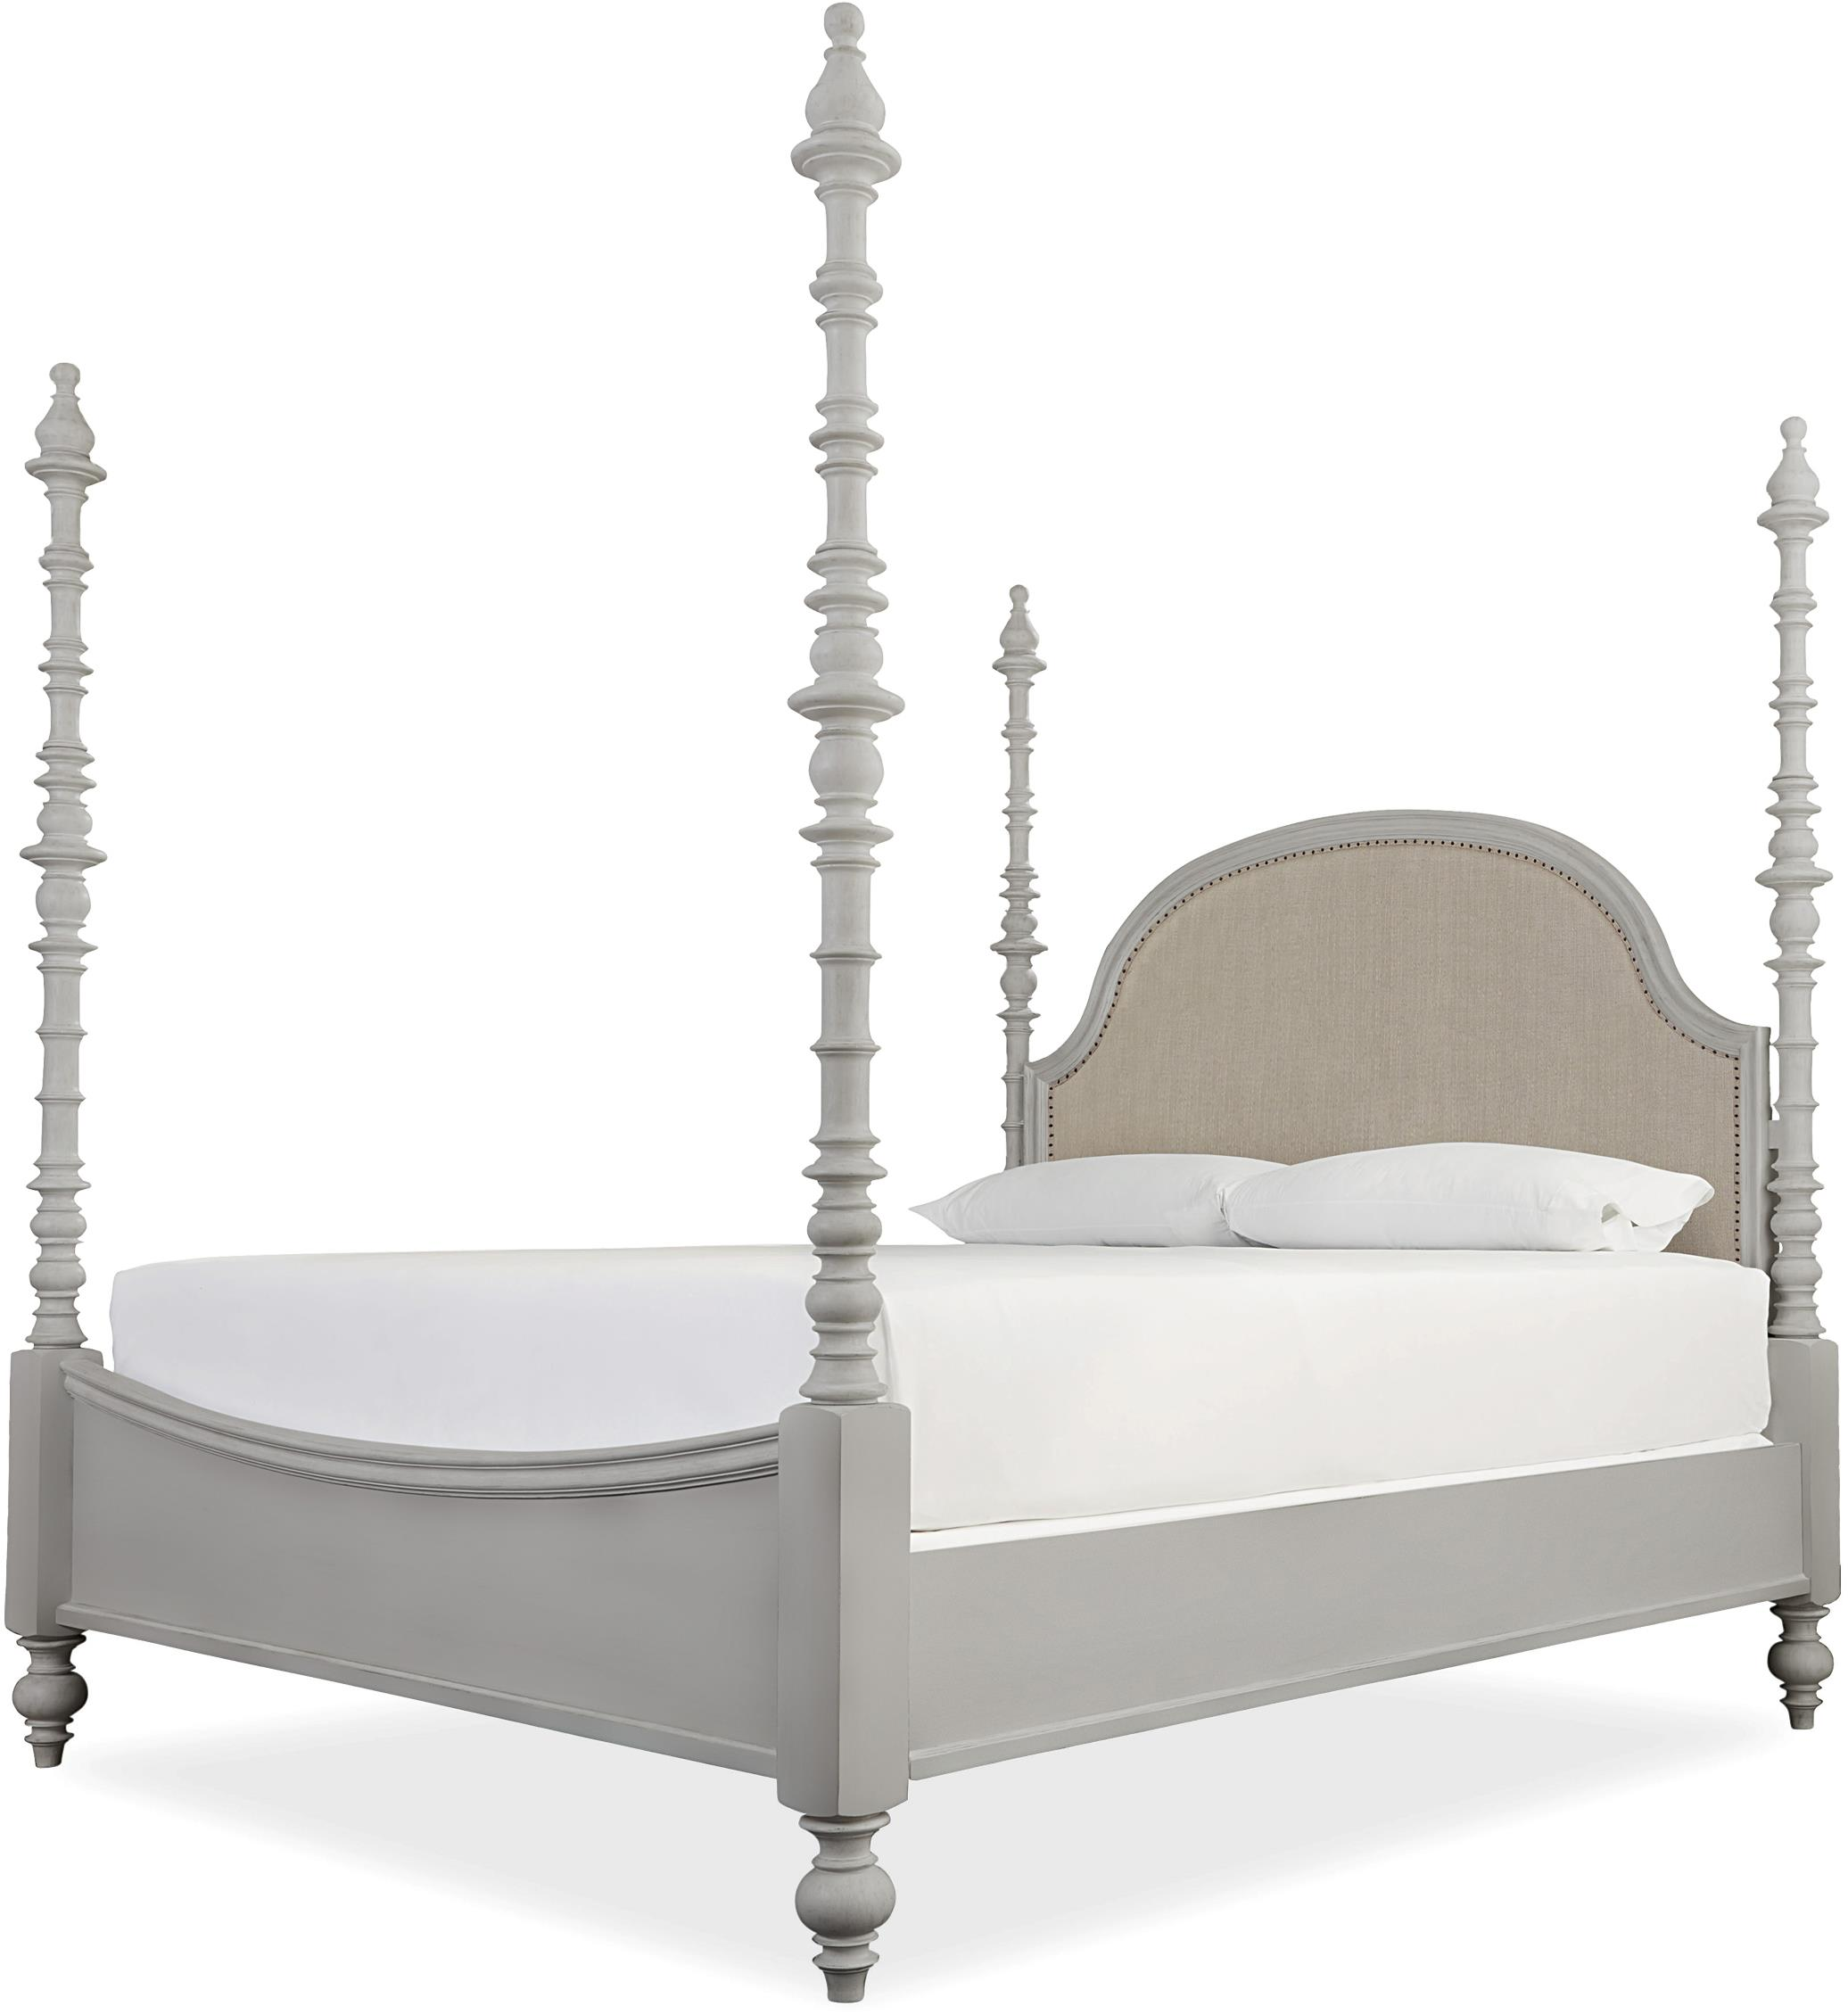 Paula Deen by Universal Dogwood The Dogwood Queen Bed - Item Number: 599280B